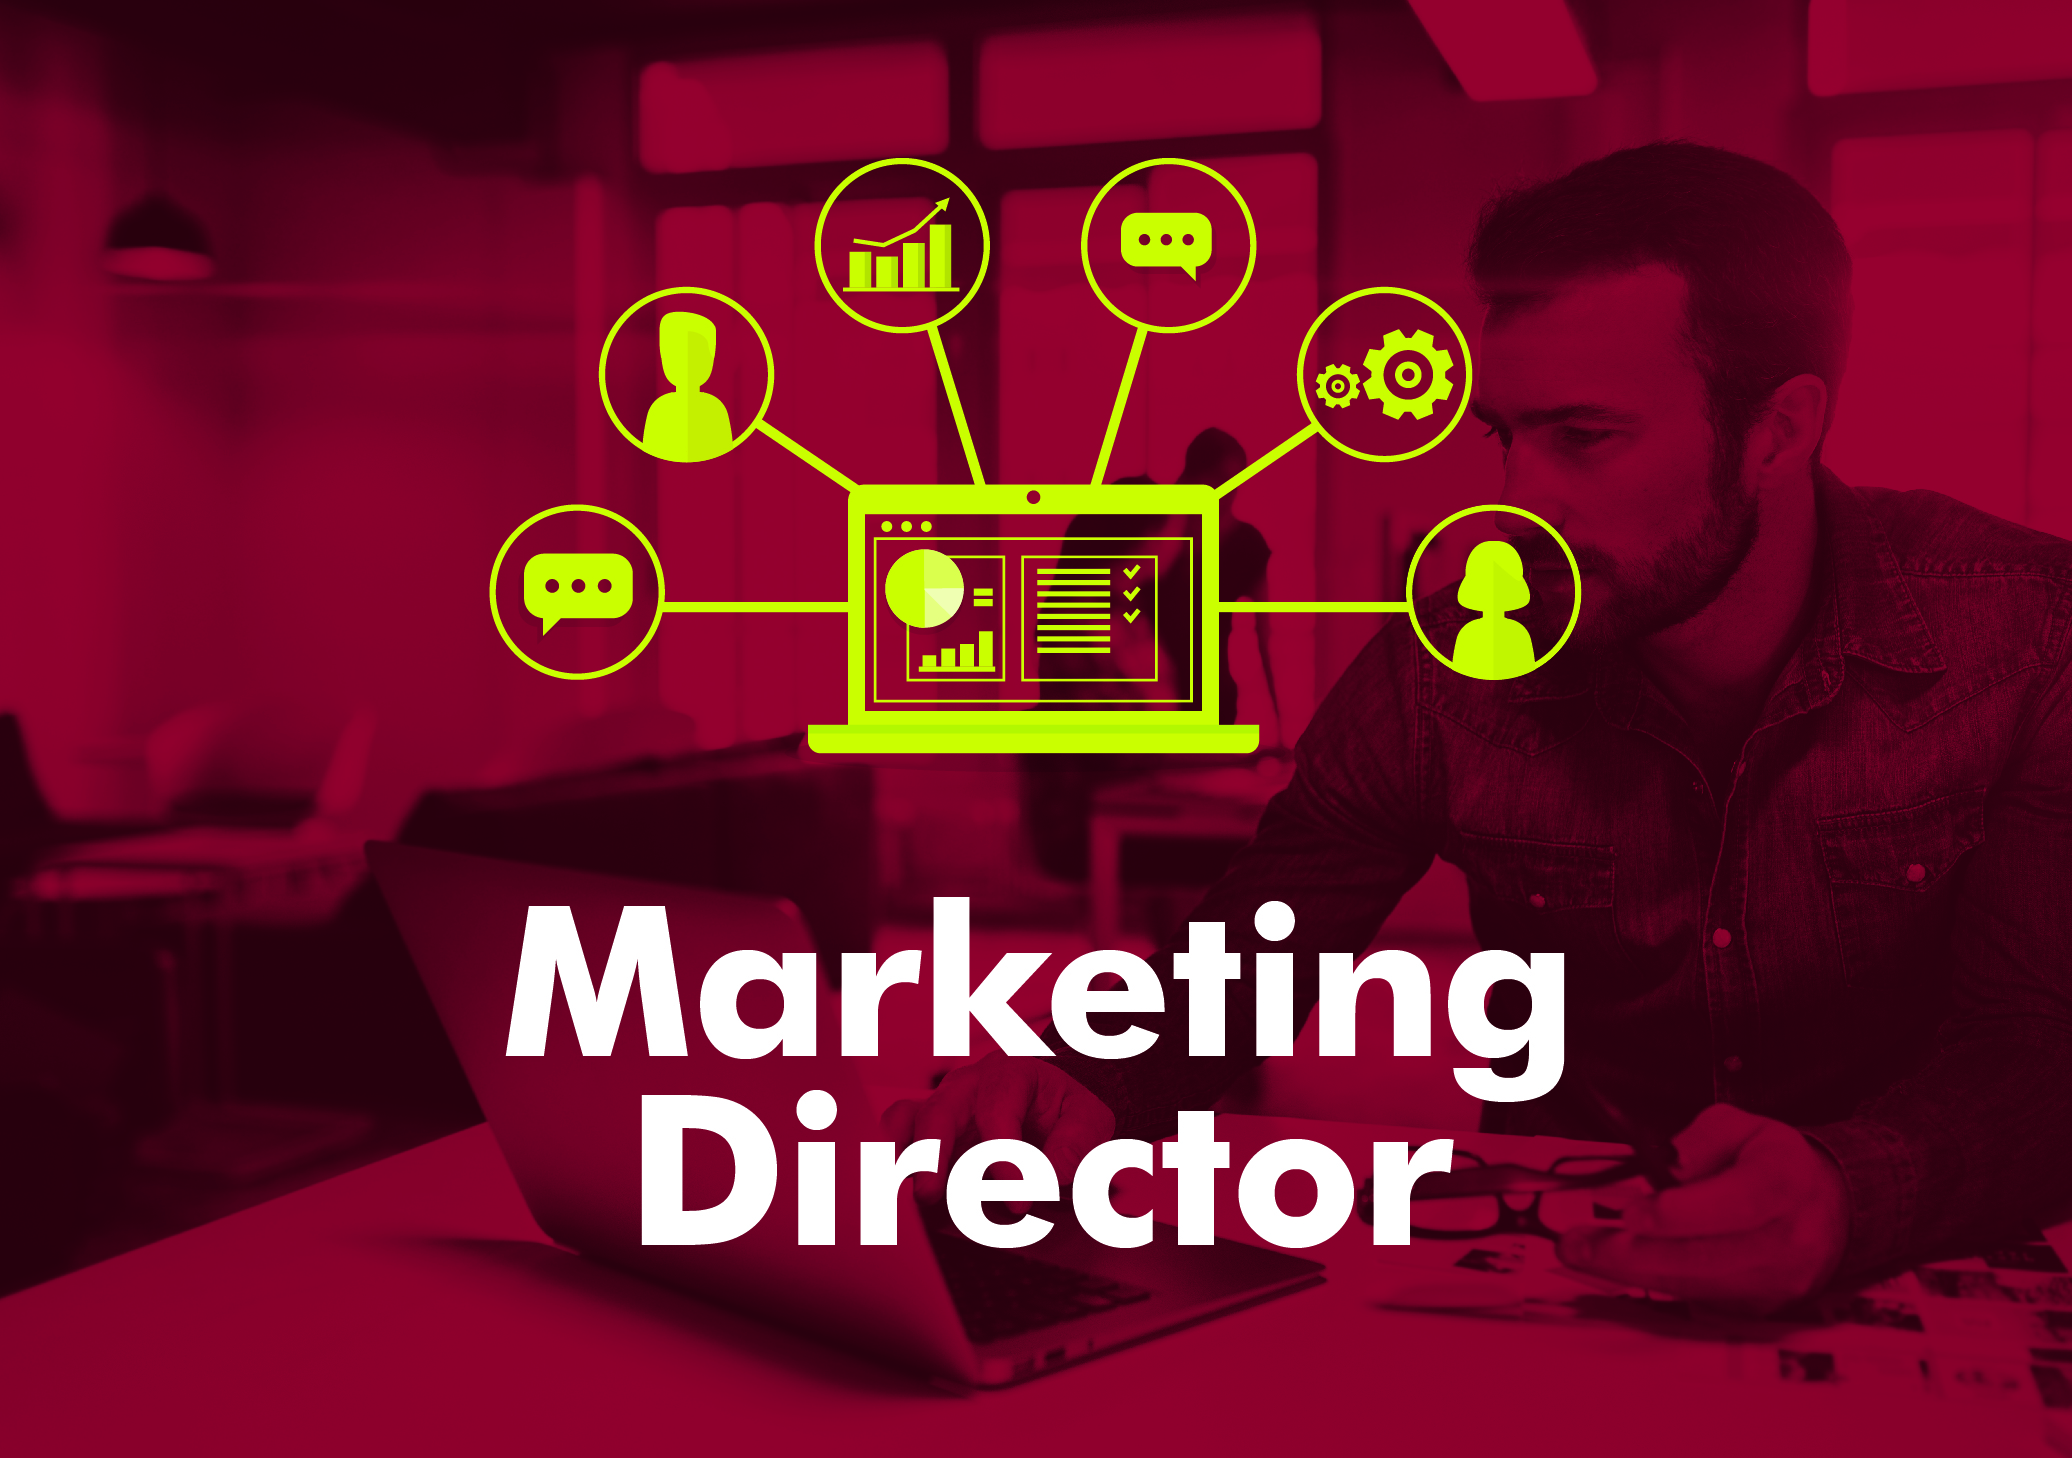 Marketing Director Job Description and Salary Outlook  Robert Half